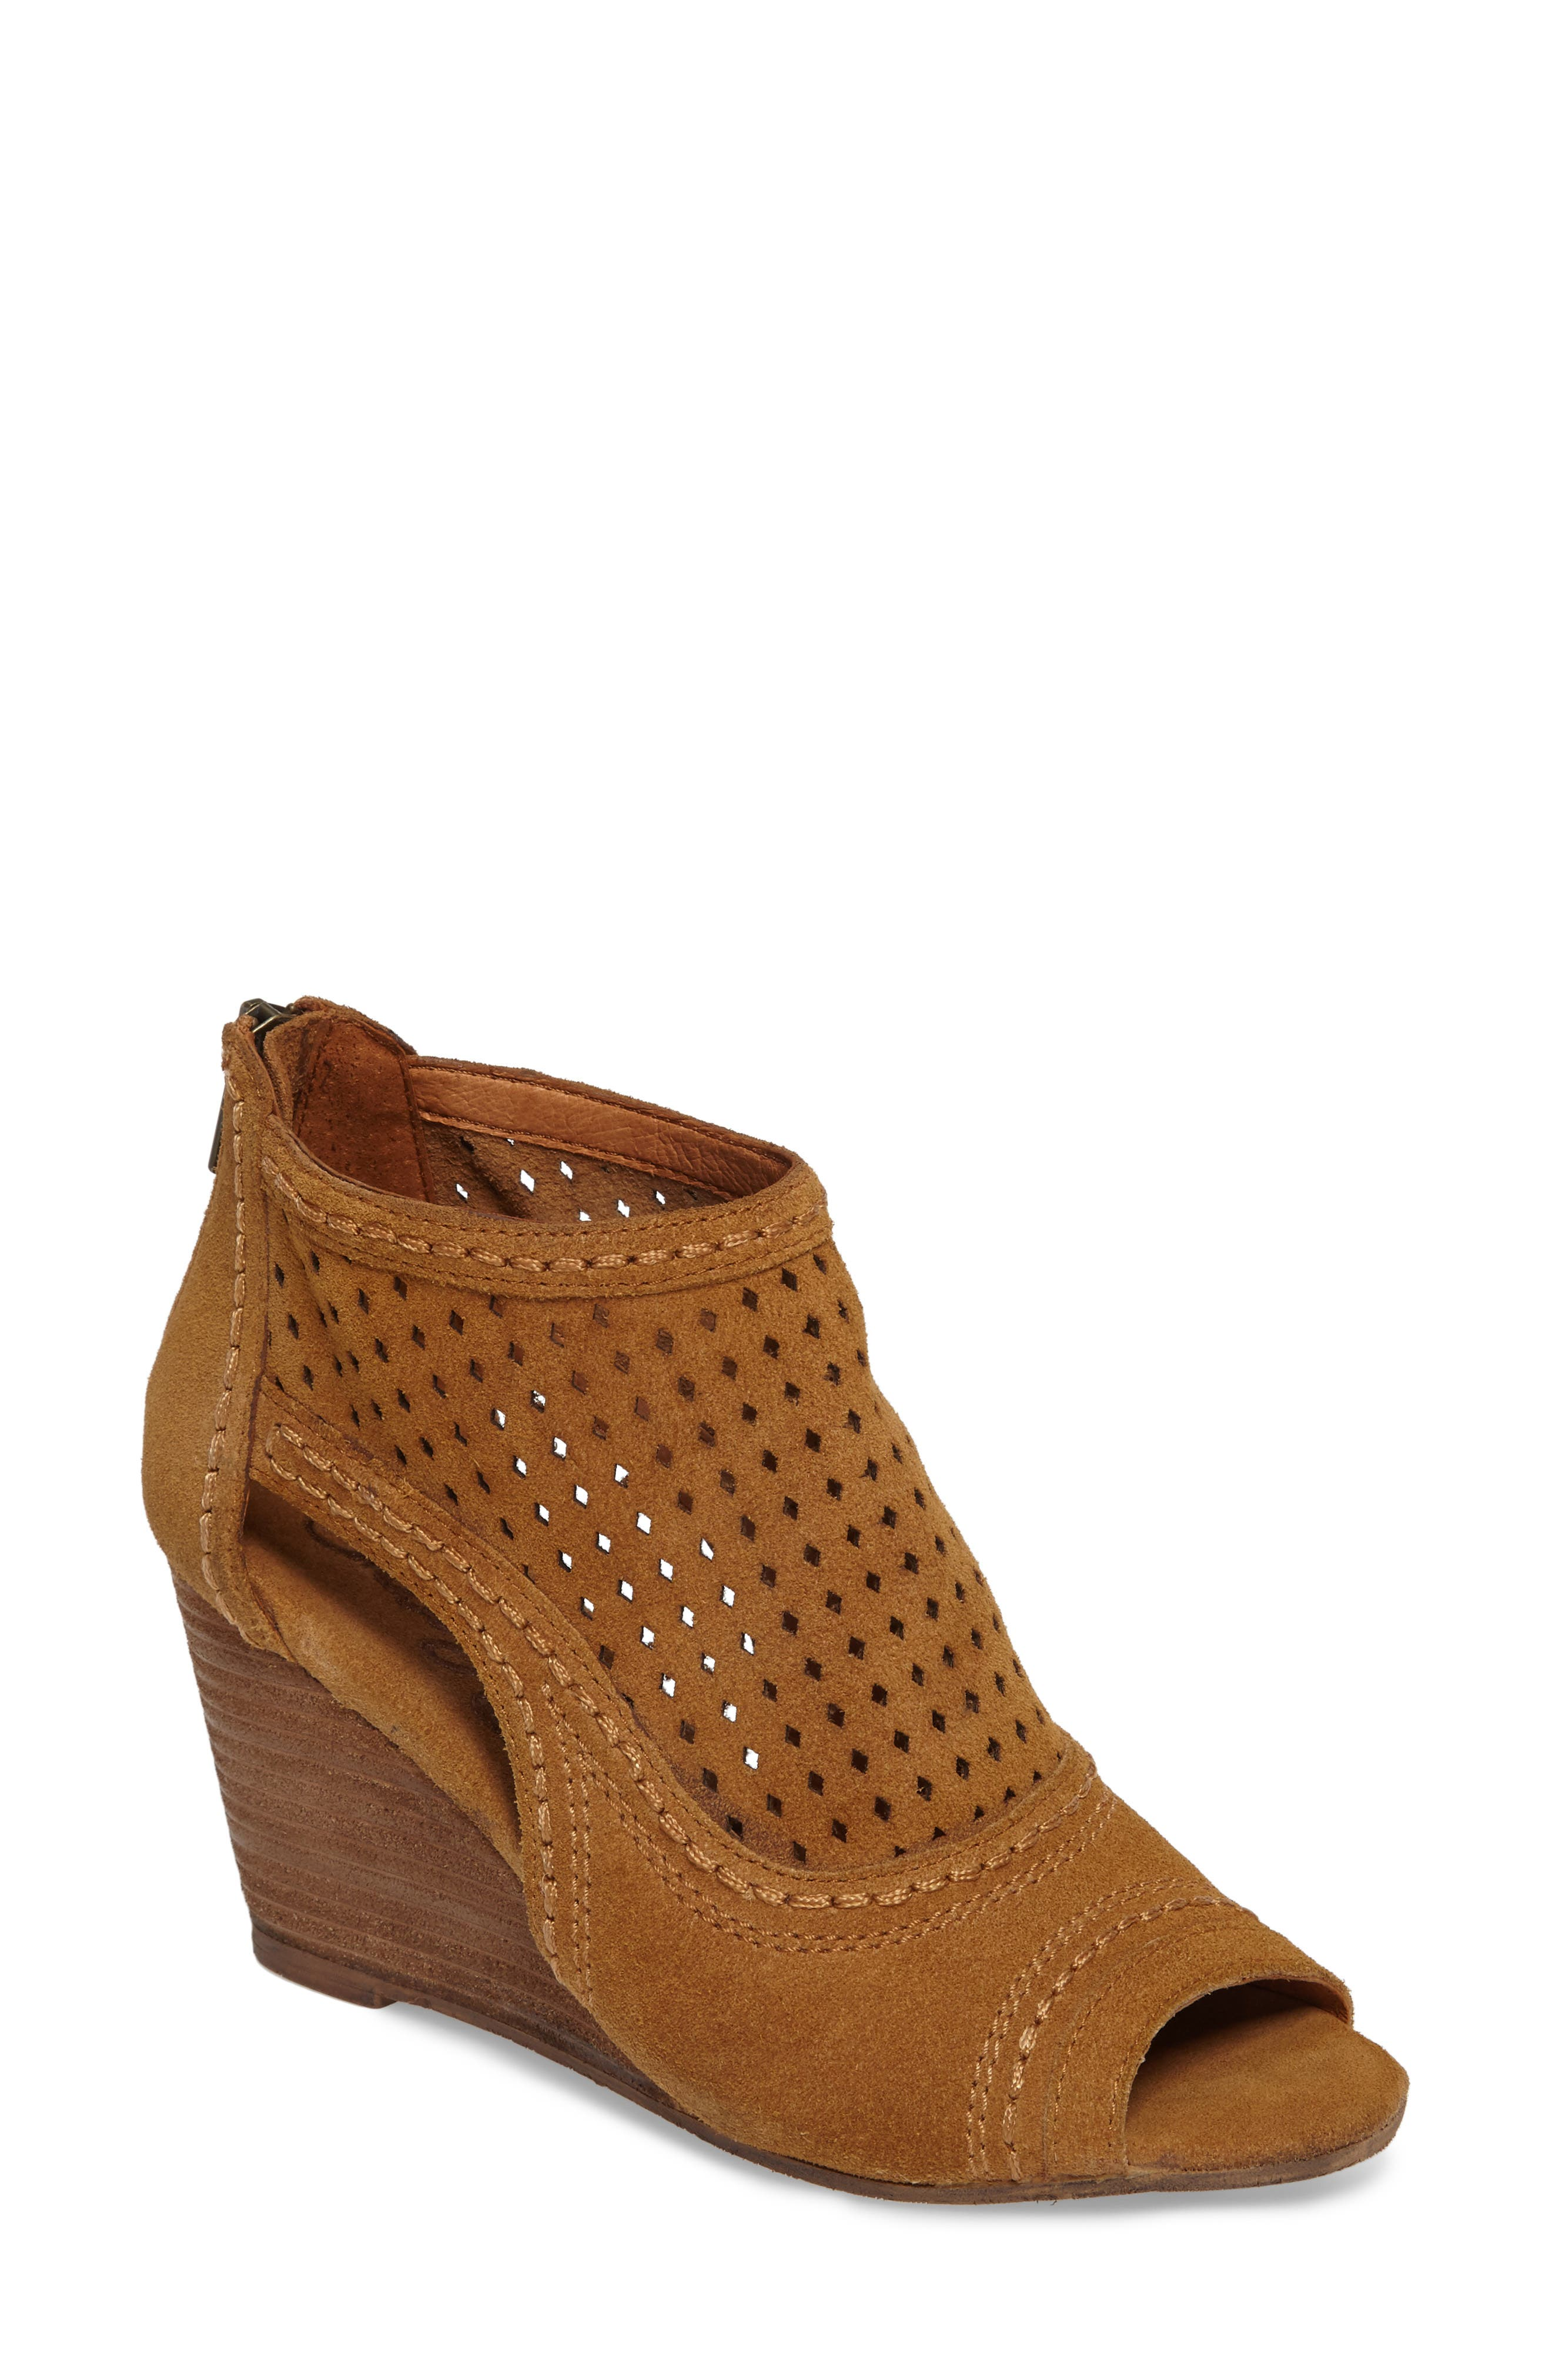 Sharon Perforated Wedge Sandal,                         Main,                         color, Sandcastle Suede